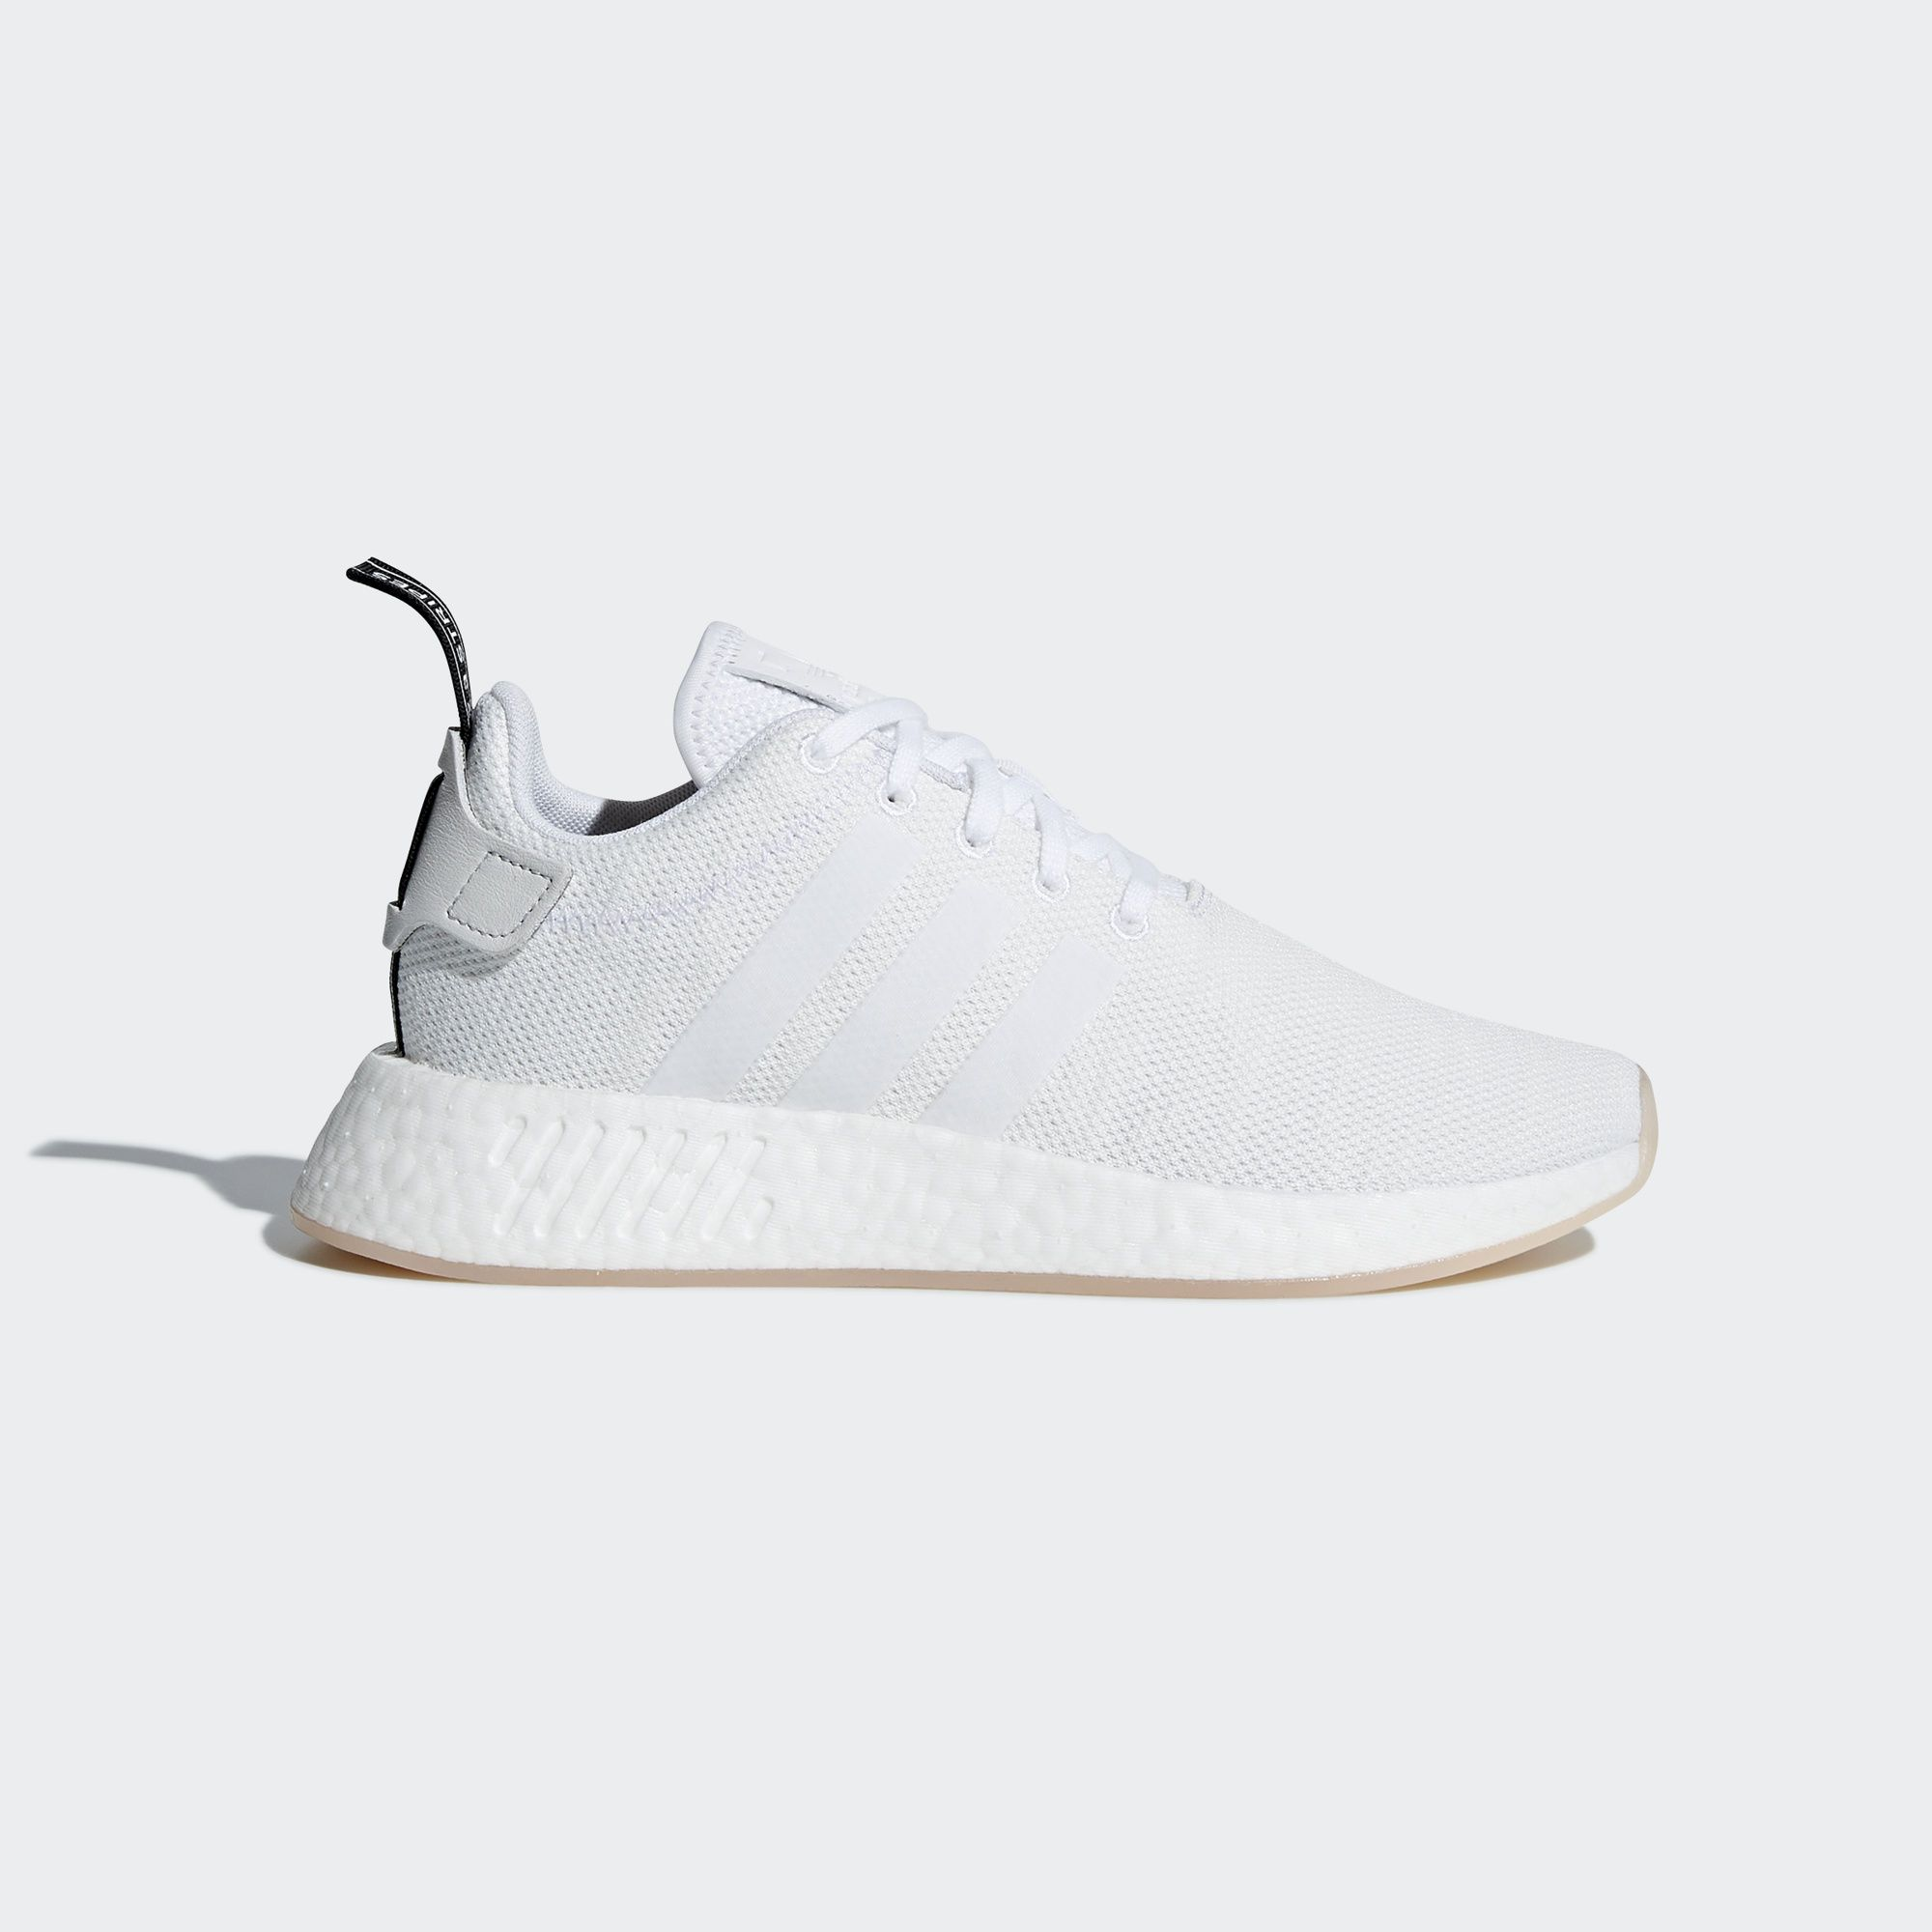 reputable site b8b60 c58d6 $91 Shop the NMD_R2 Shoes - White at adidas.com/us! See all ...